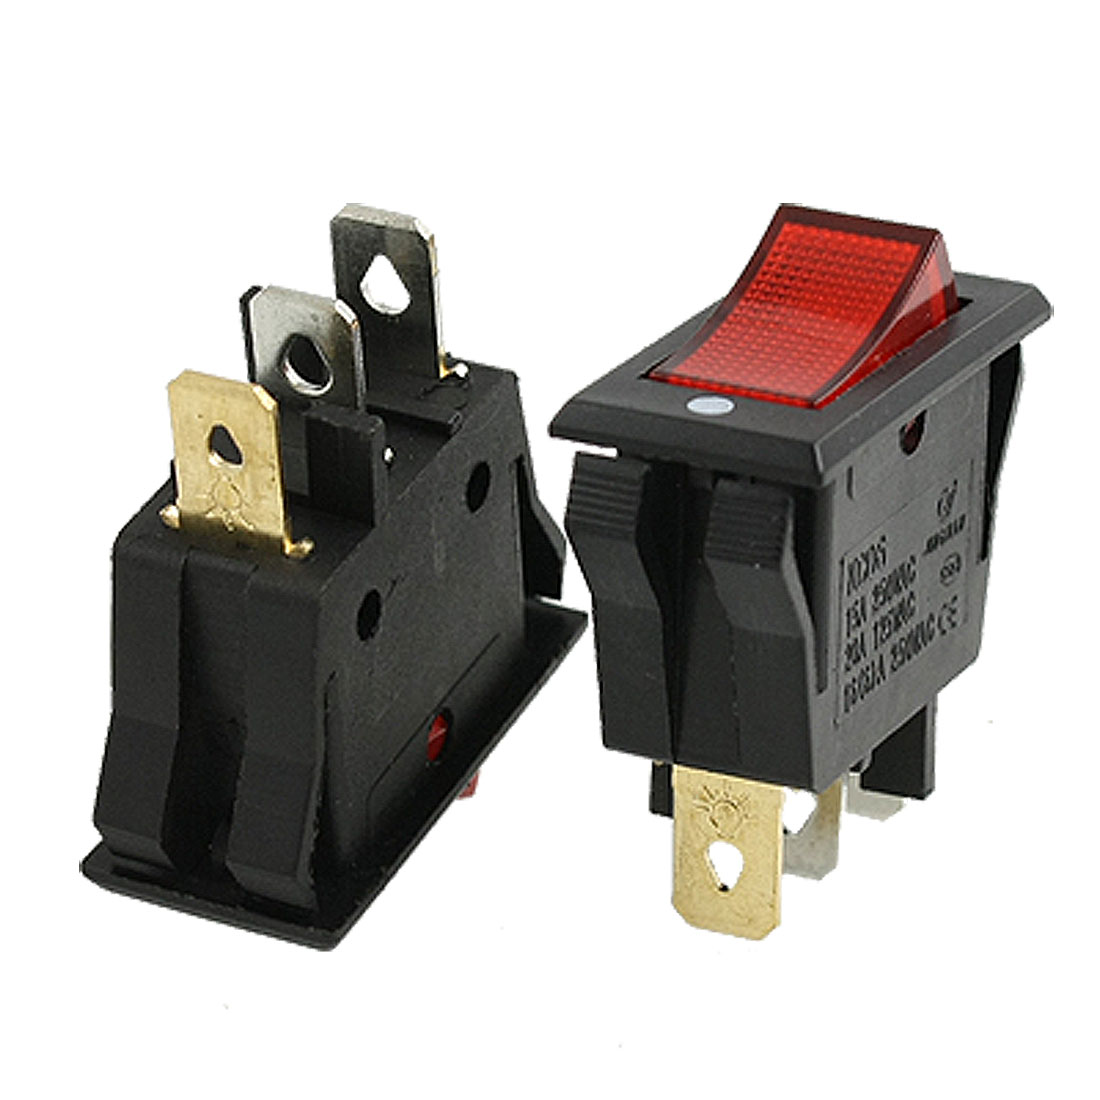 Unique Bargains 10 pcs AC 15A/250V 20A/125V Red Light 3Pin SPST ON/OFF Panel Mount Rocker Switch